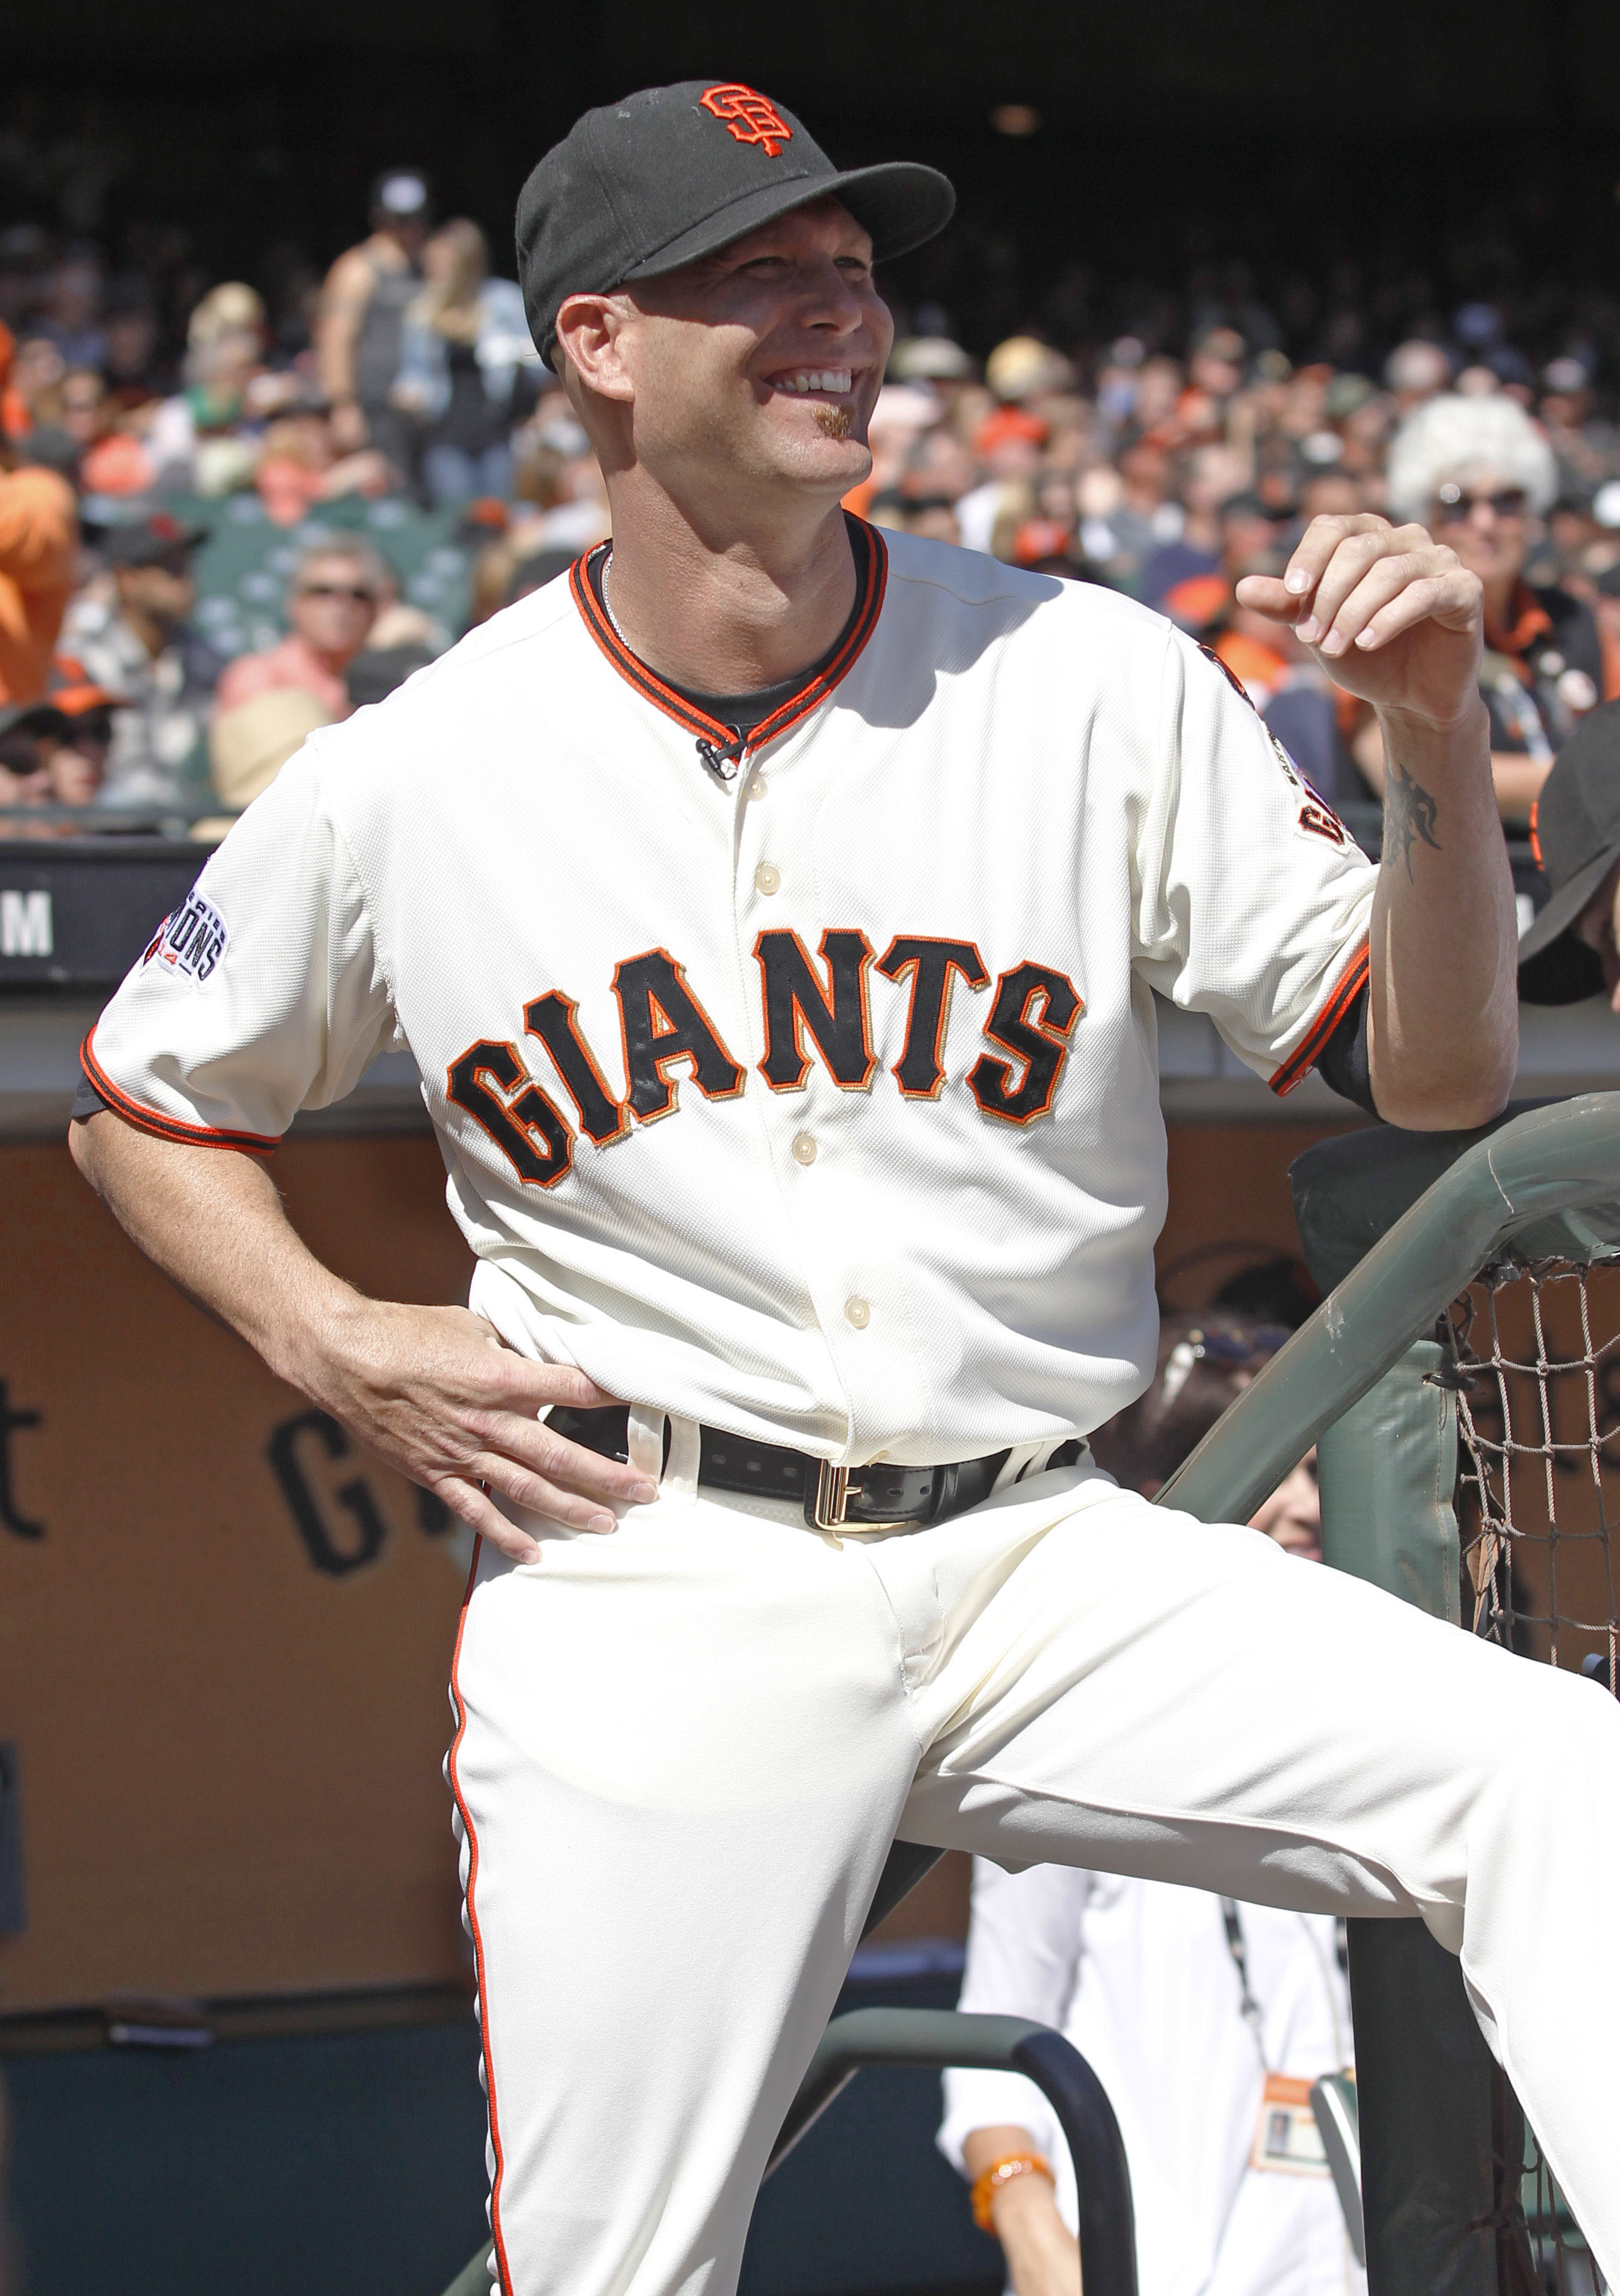 San Francisco Giants pitcher Tim Hudson smiles at the start of a ceremony, commemorating his career before a baseball game between the San Francisco Giants and the Colorado Rockies, Saturday, Oct. 3, 2015, in San Francisco.  (AP Photo/George Nikitin)